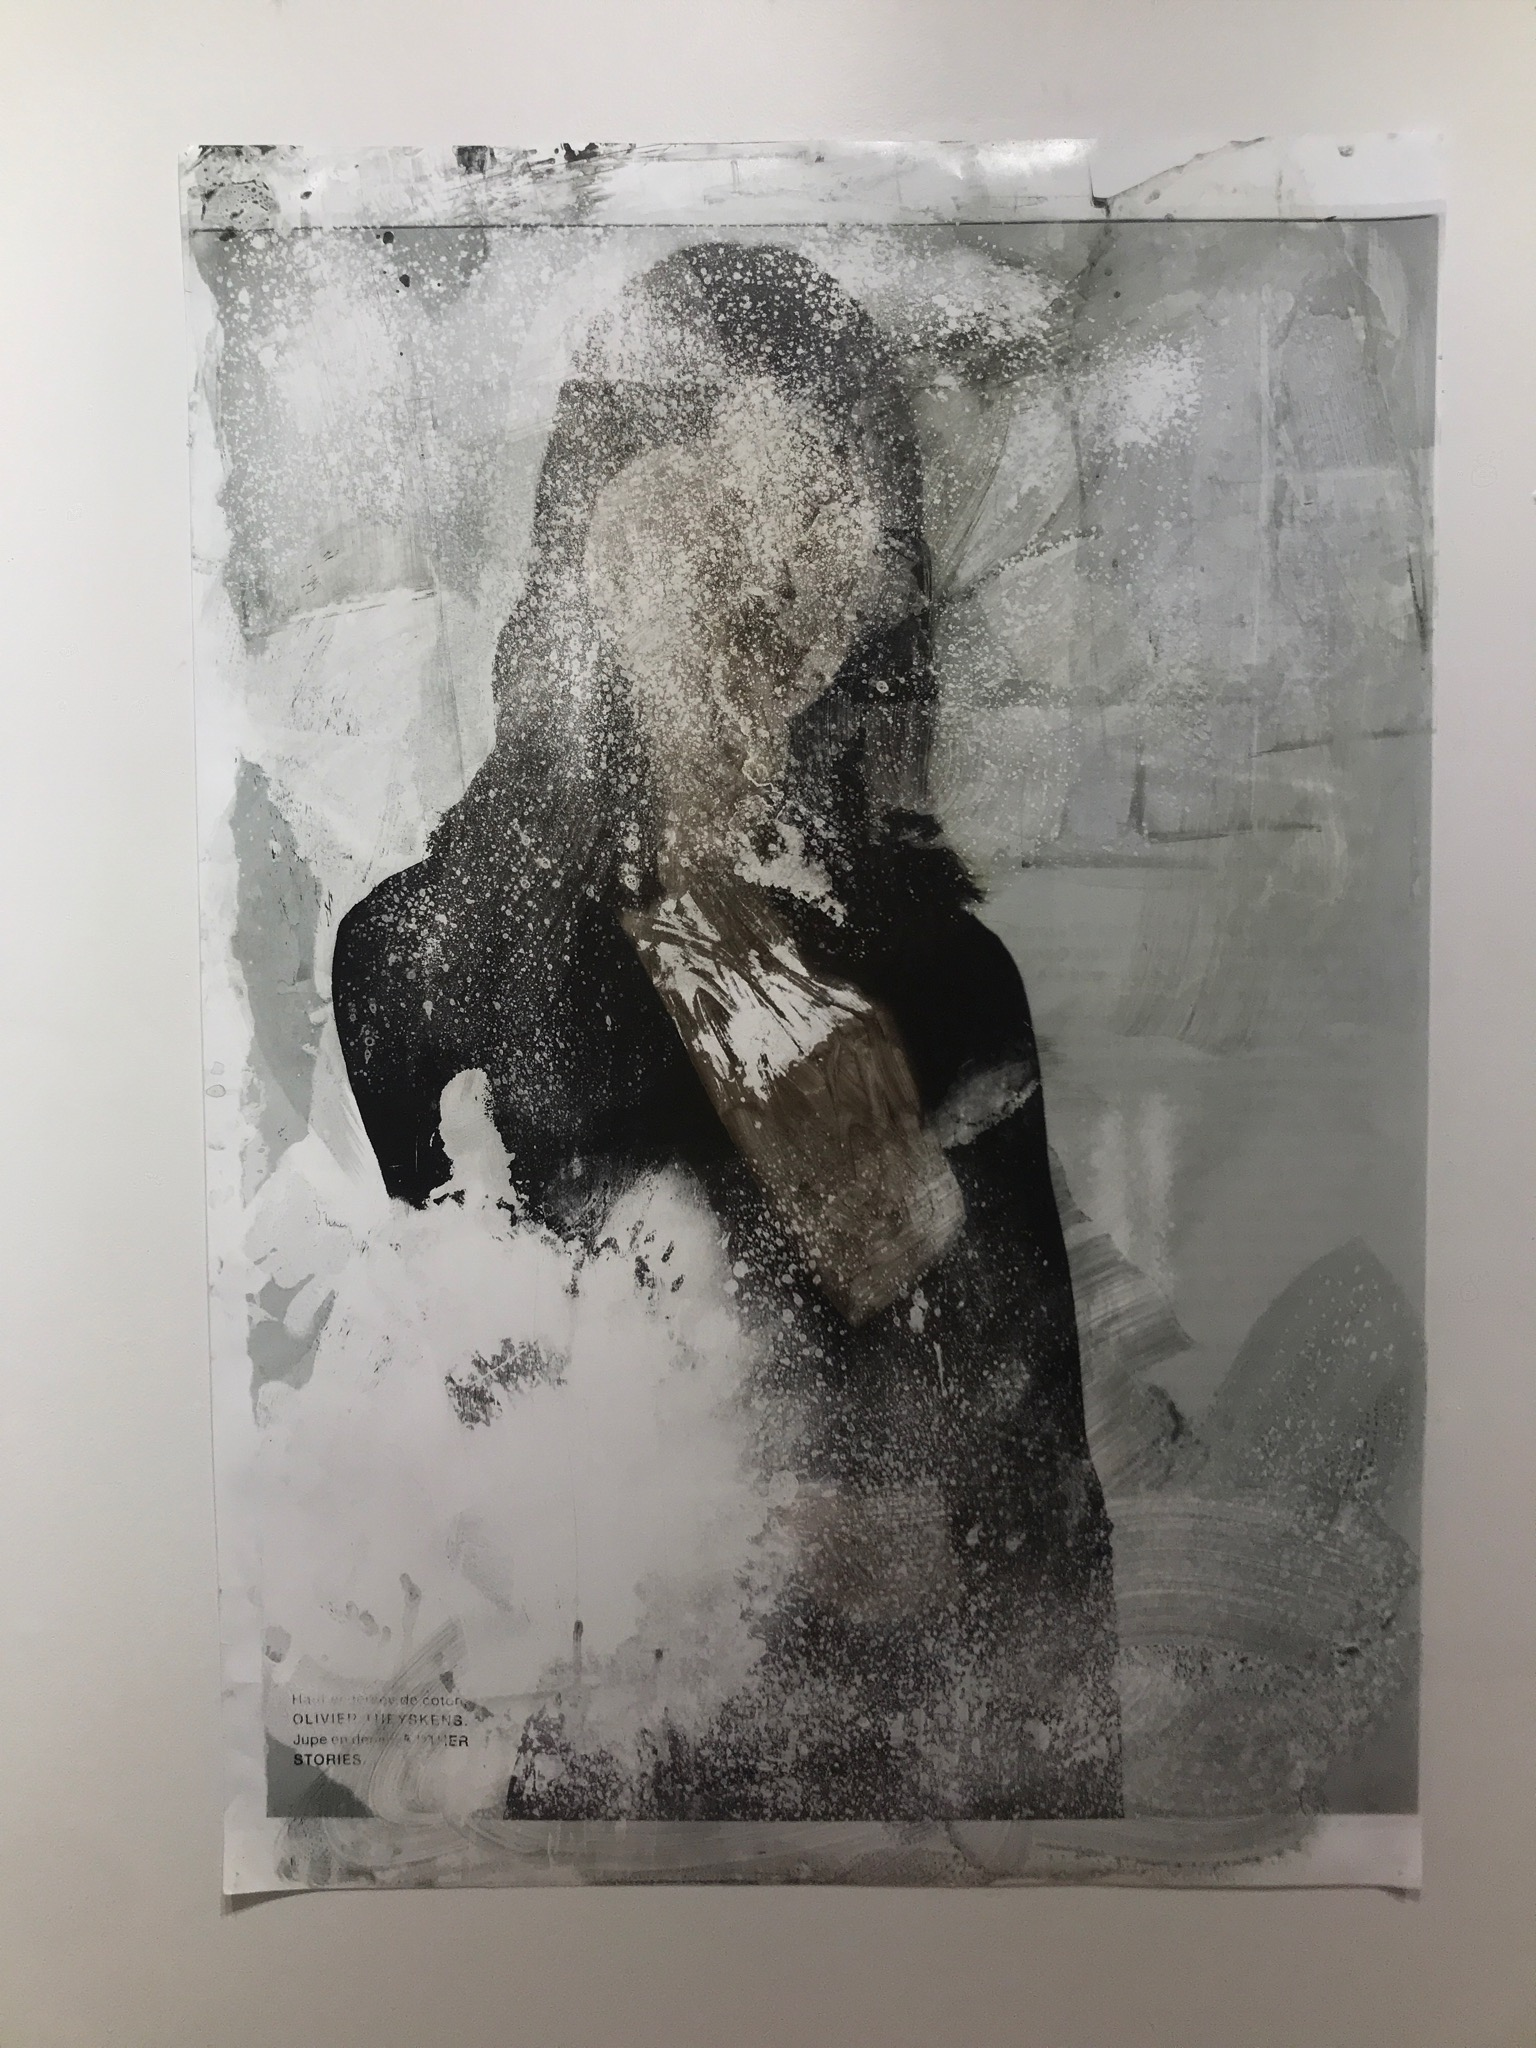 Objet de Désir 3   2017  51.5 x 36 in.  Citra solv on magazine, window cleaner, and bleach on photo paper